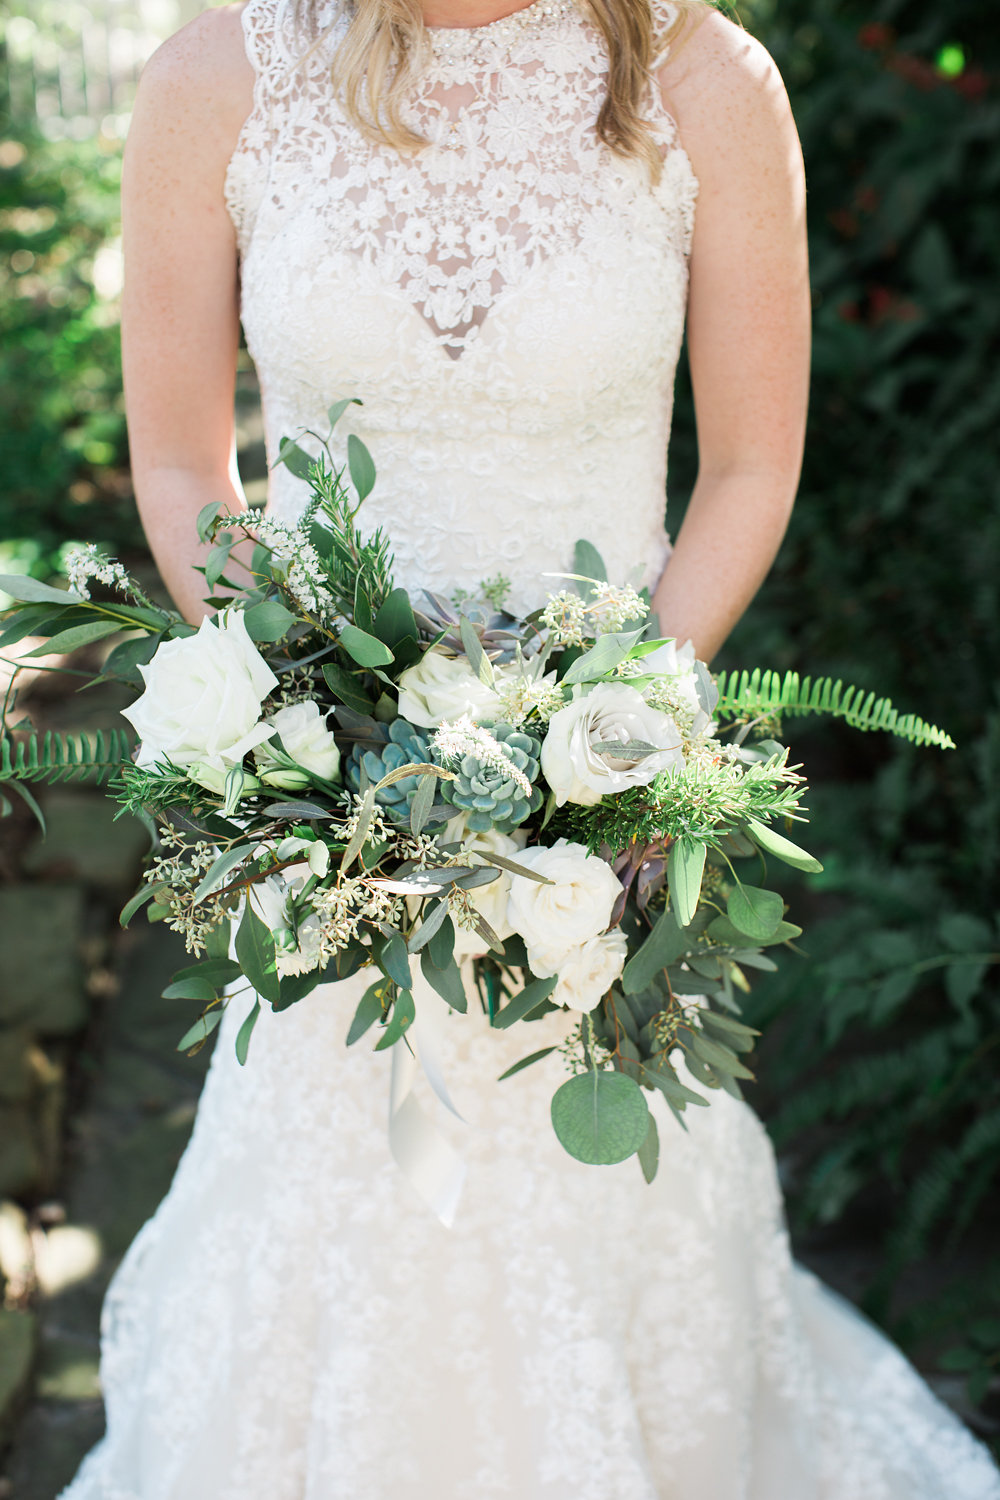 Danni holding her bouquet made with roses, greenery and succulents.